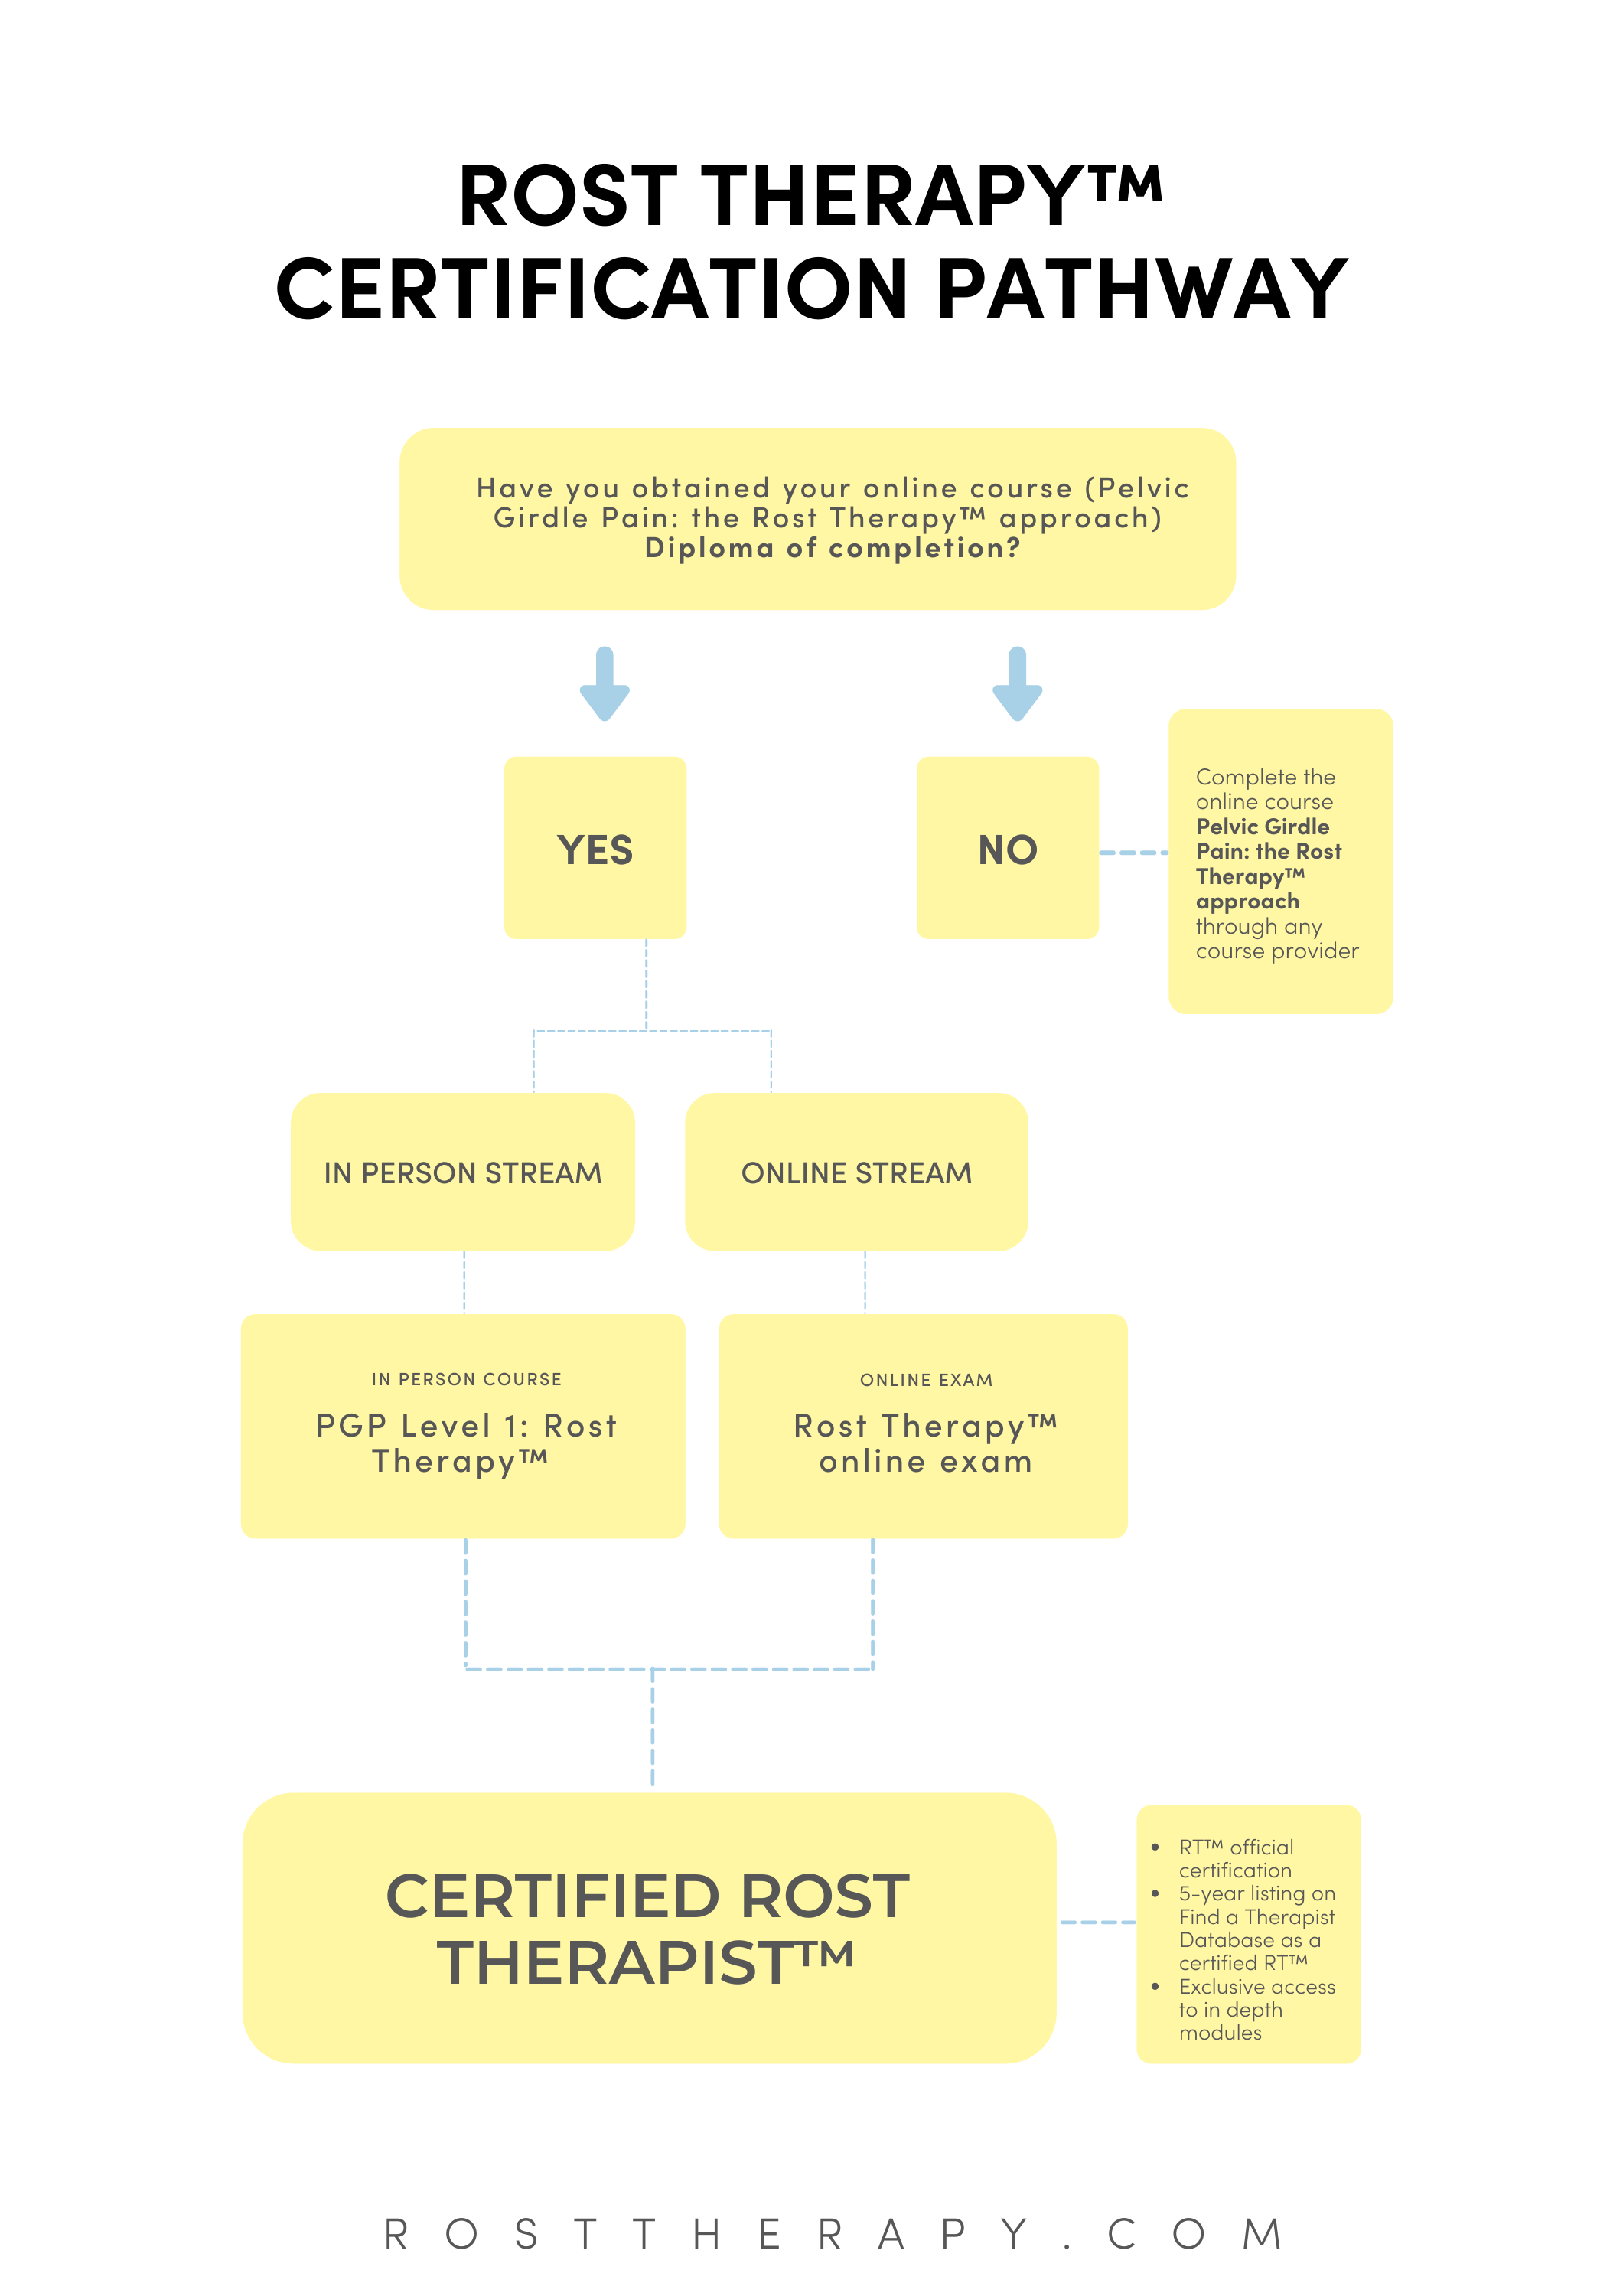 Rost Therapy certification pathway